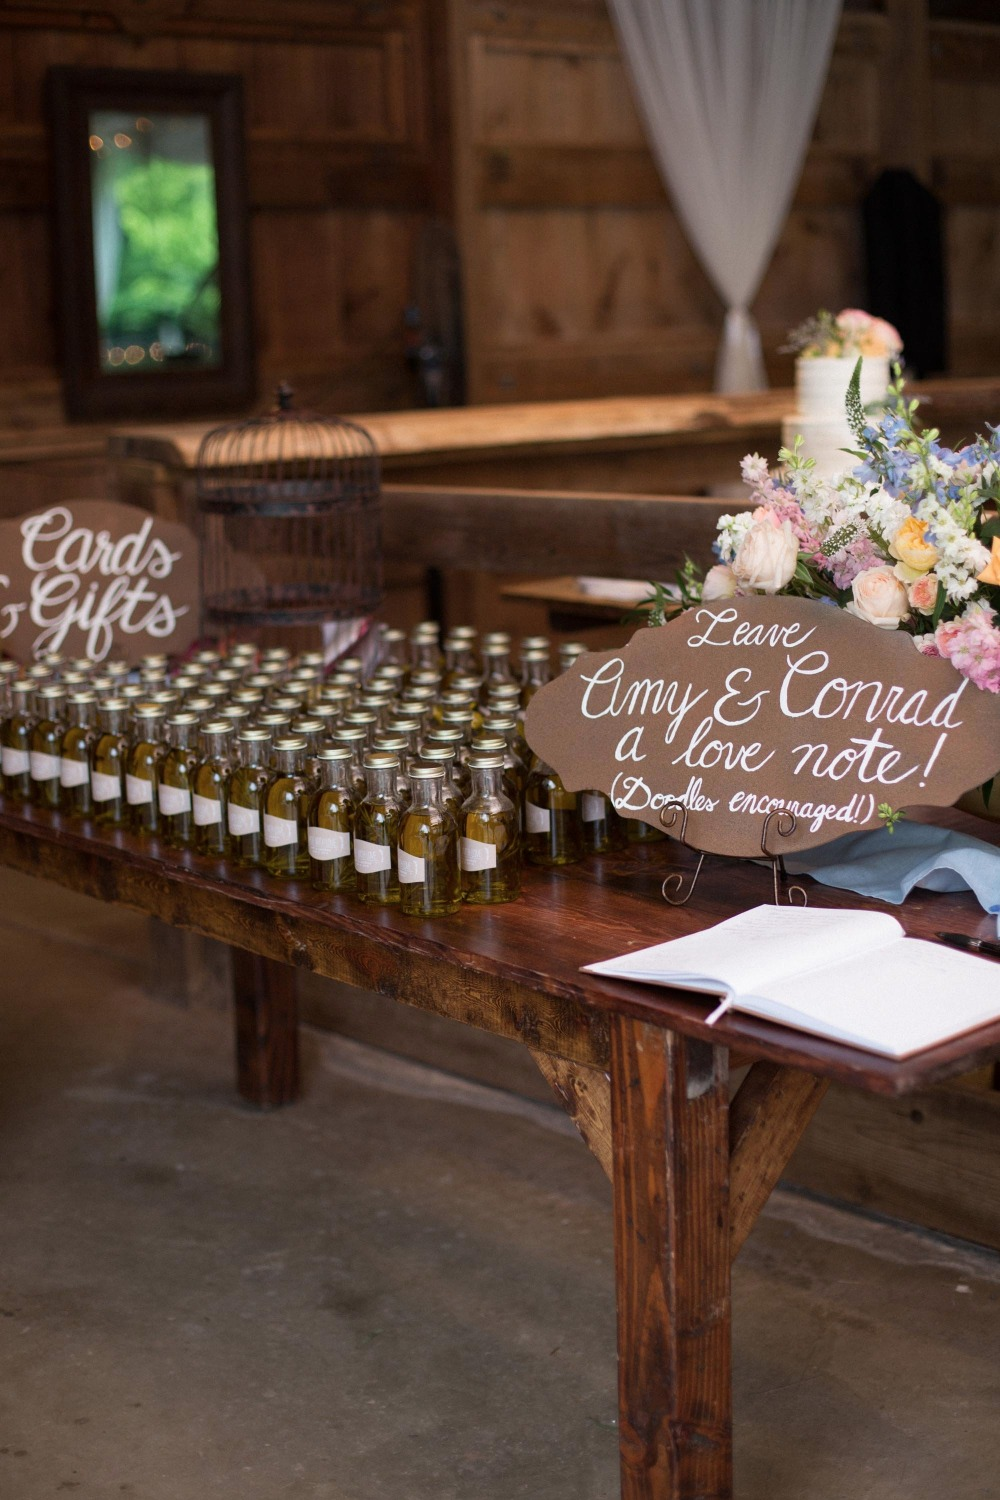 Bottles of olive oil wedding favors